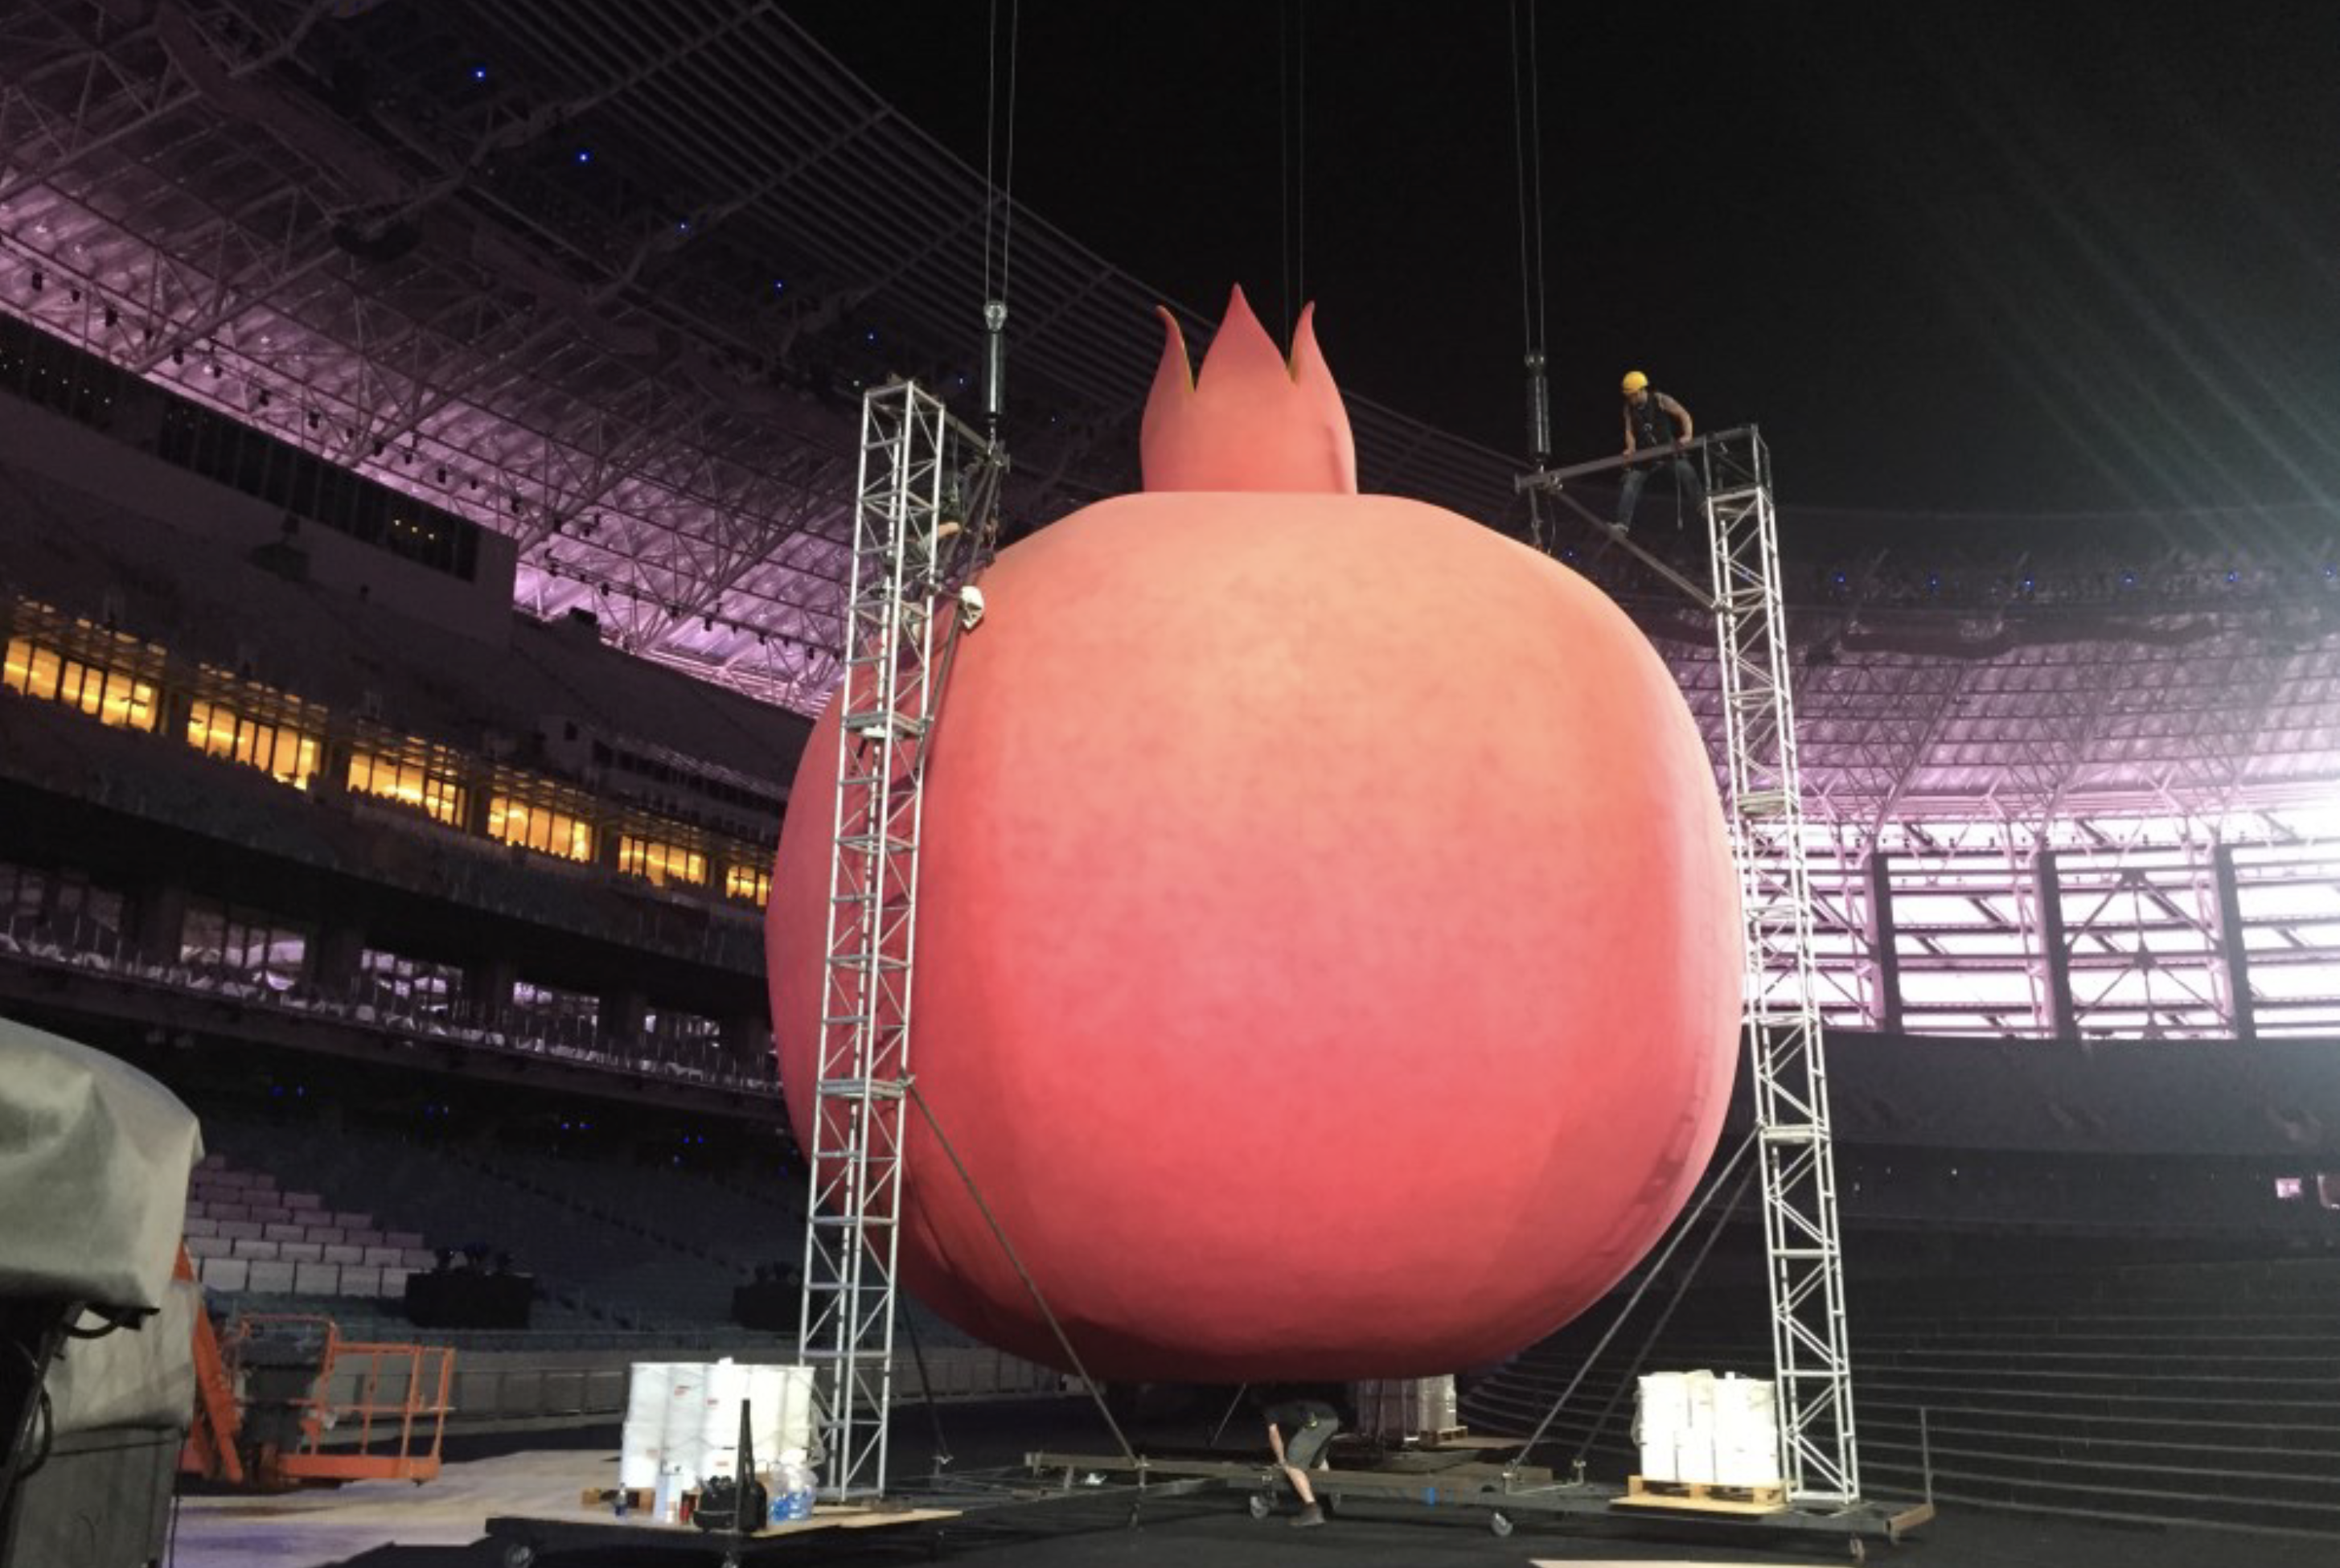 J&C Joel designed and manufactured the skin for a gigantic pomegranate for the European Games in Baku, Azerbaijan.